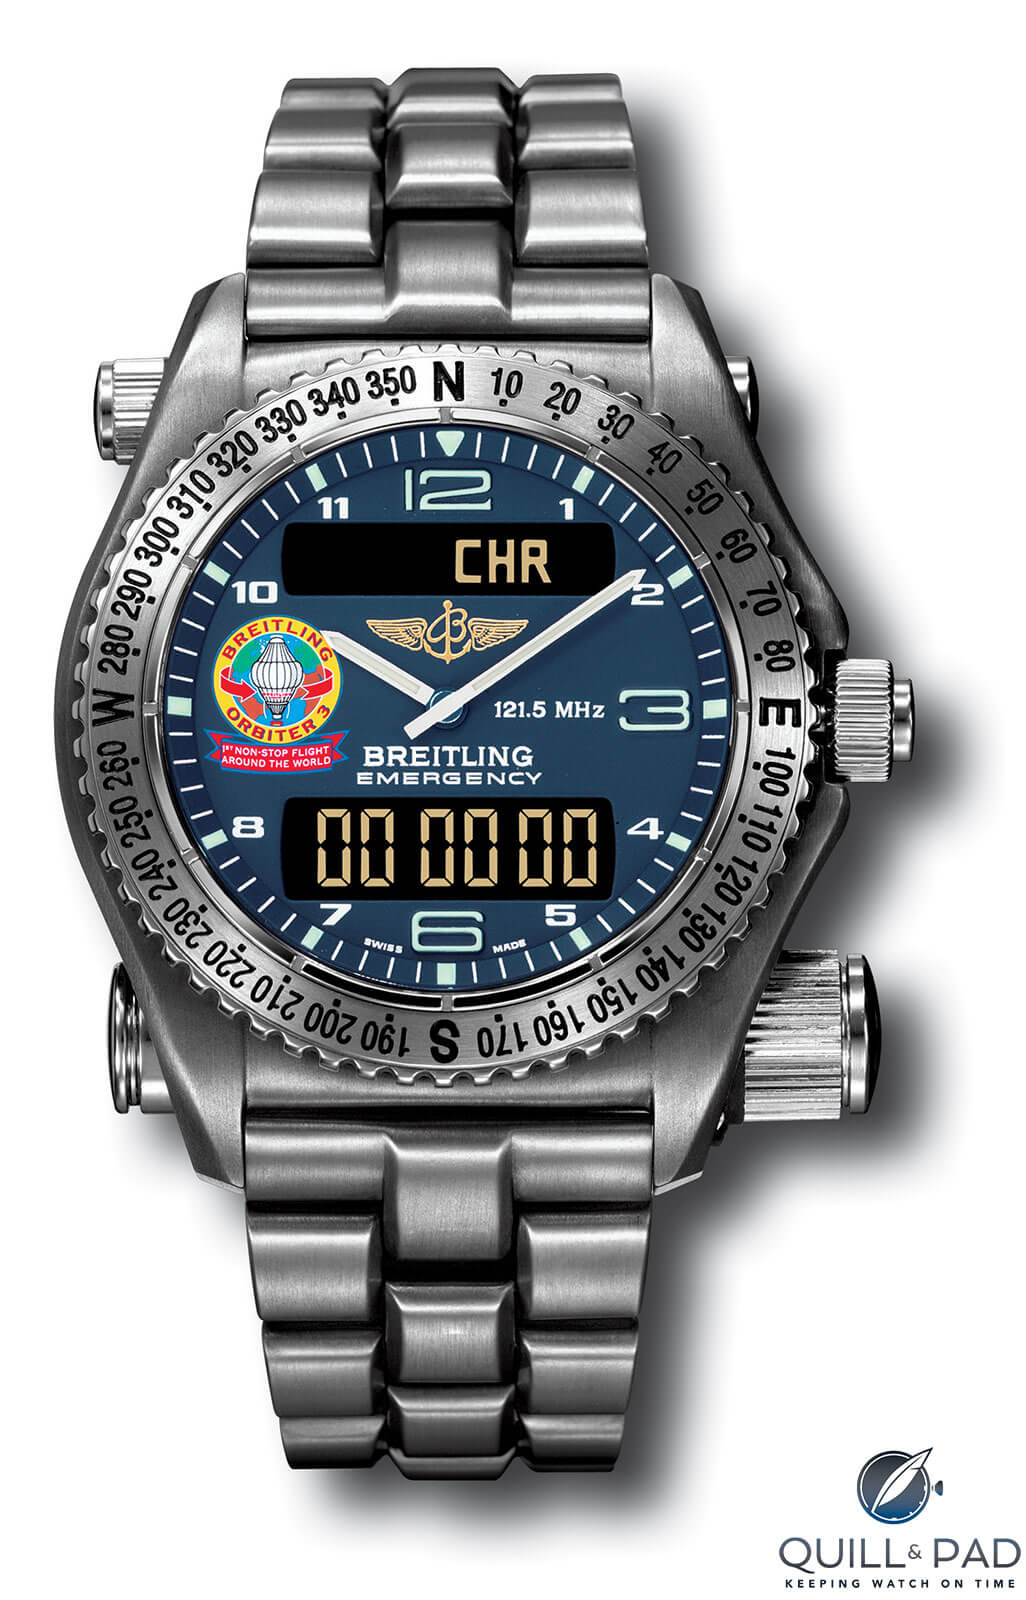 Breitling Orbiter Emergency limited edition wristwatch in titanium